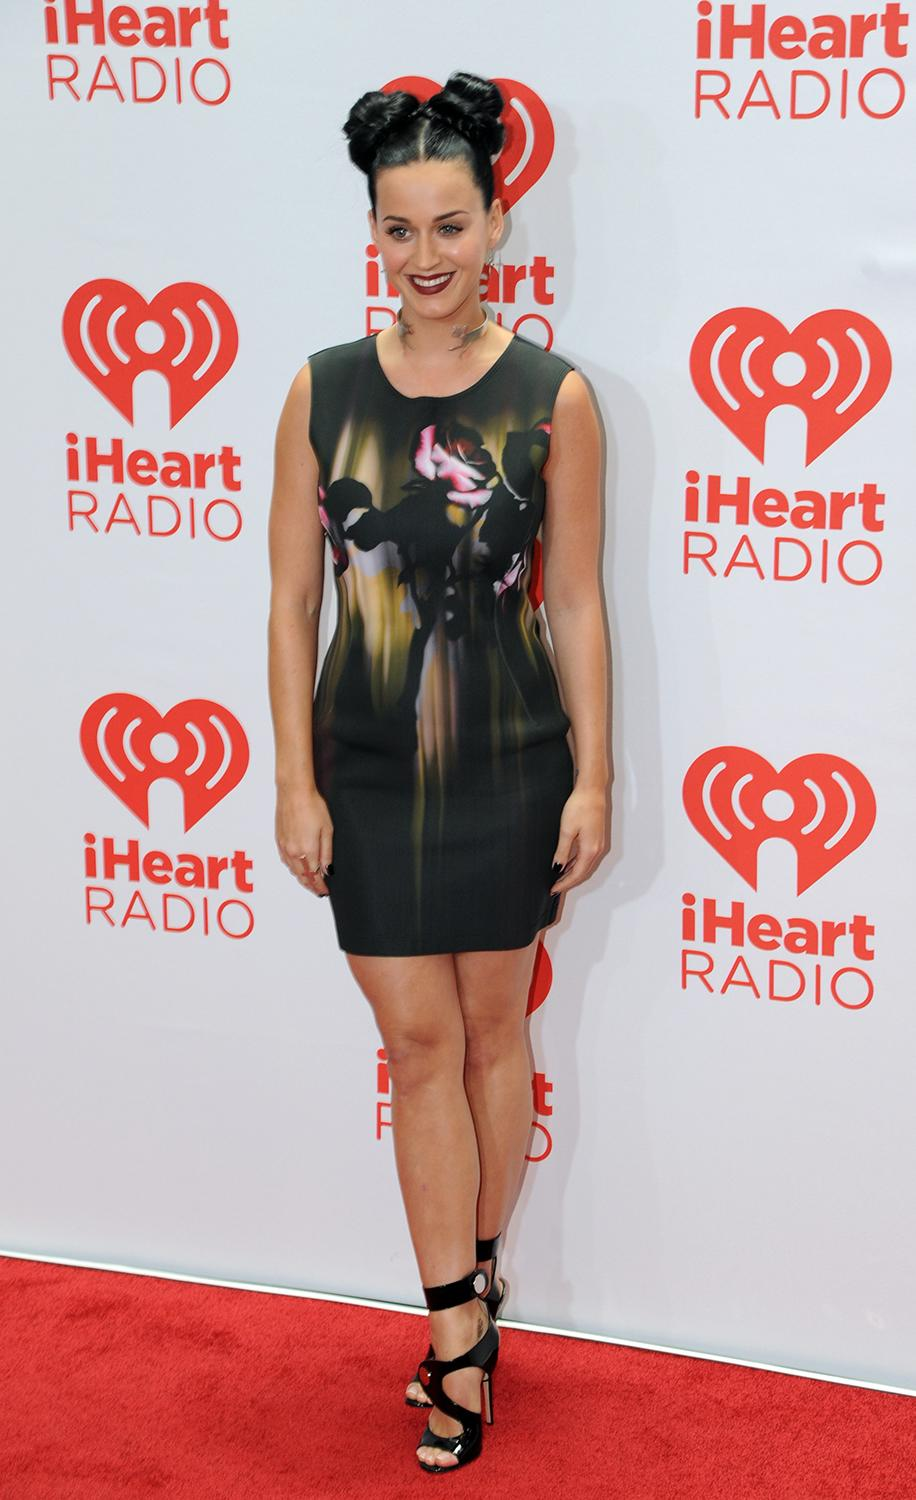 In this photo provided by the Las Vegas News Bureau, Katy Perry walks the red carpet at the MGM Grand Hotel during the iHeartRadio Music Festival in Las Vegas. Friday, Sept. 20, 2013. (AP Photo/Las Vegas News Bureau, Brian Jones)